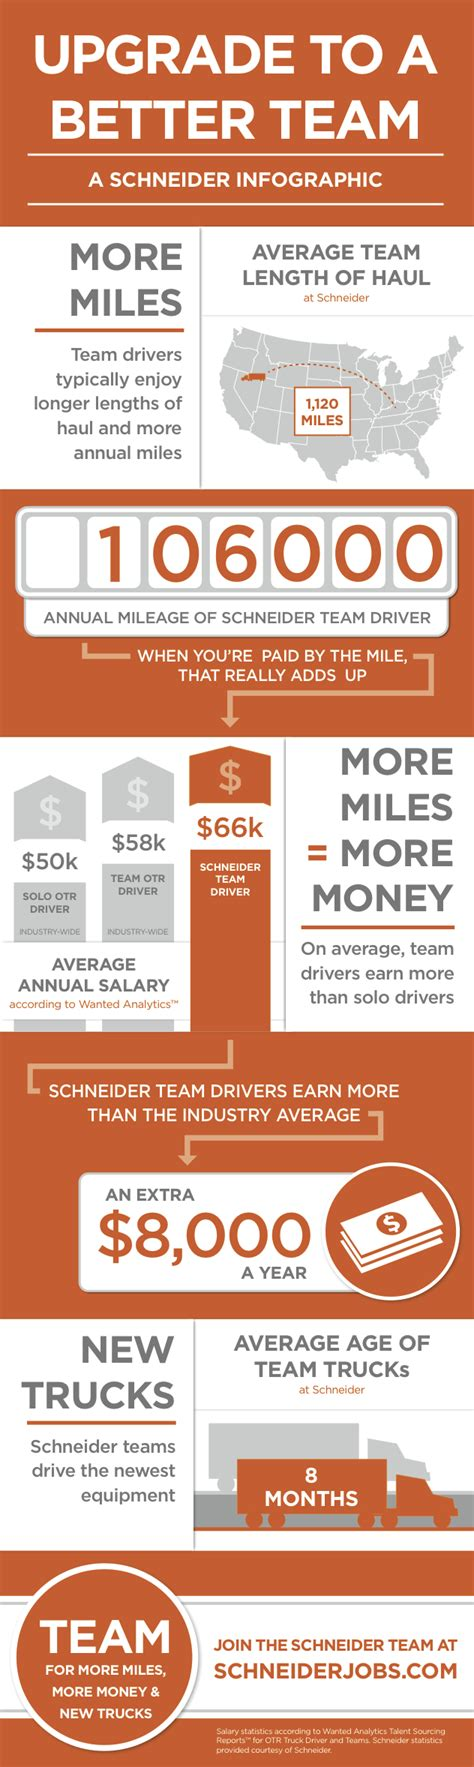 team truck drivers at schneider infographic